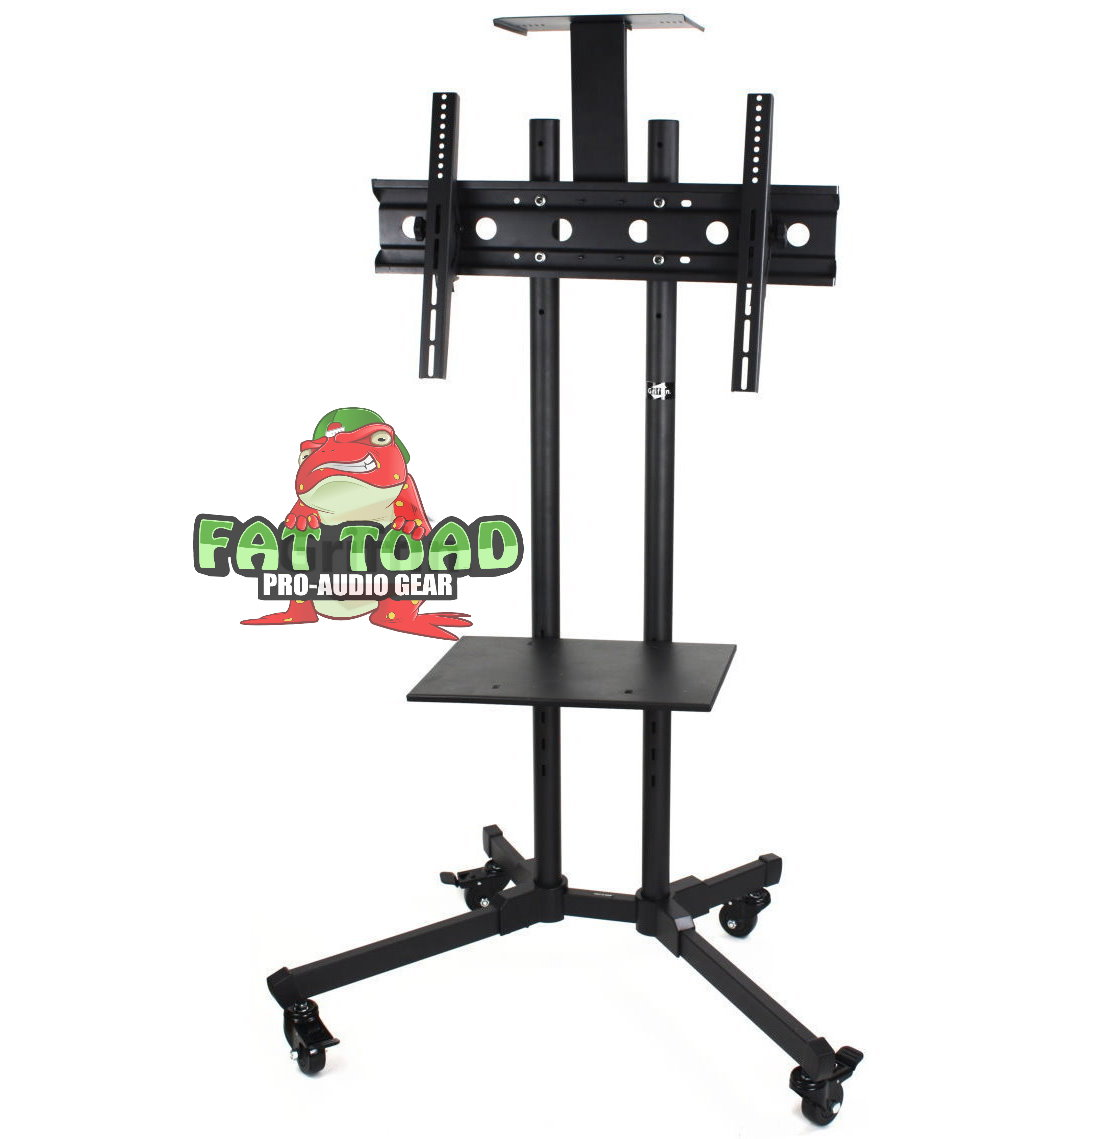 LCD TV Cart by Fat Toad Rolling Flat Panel Screen Stand w...